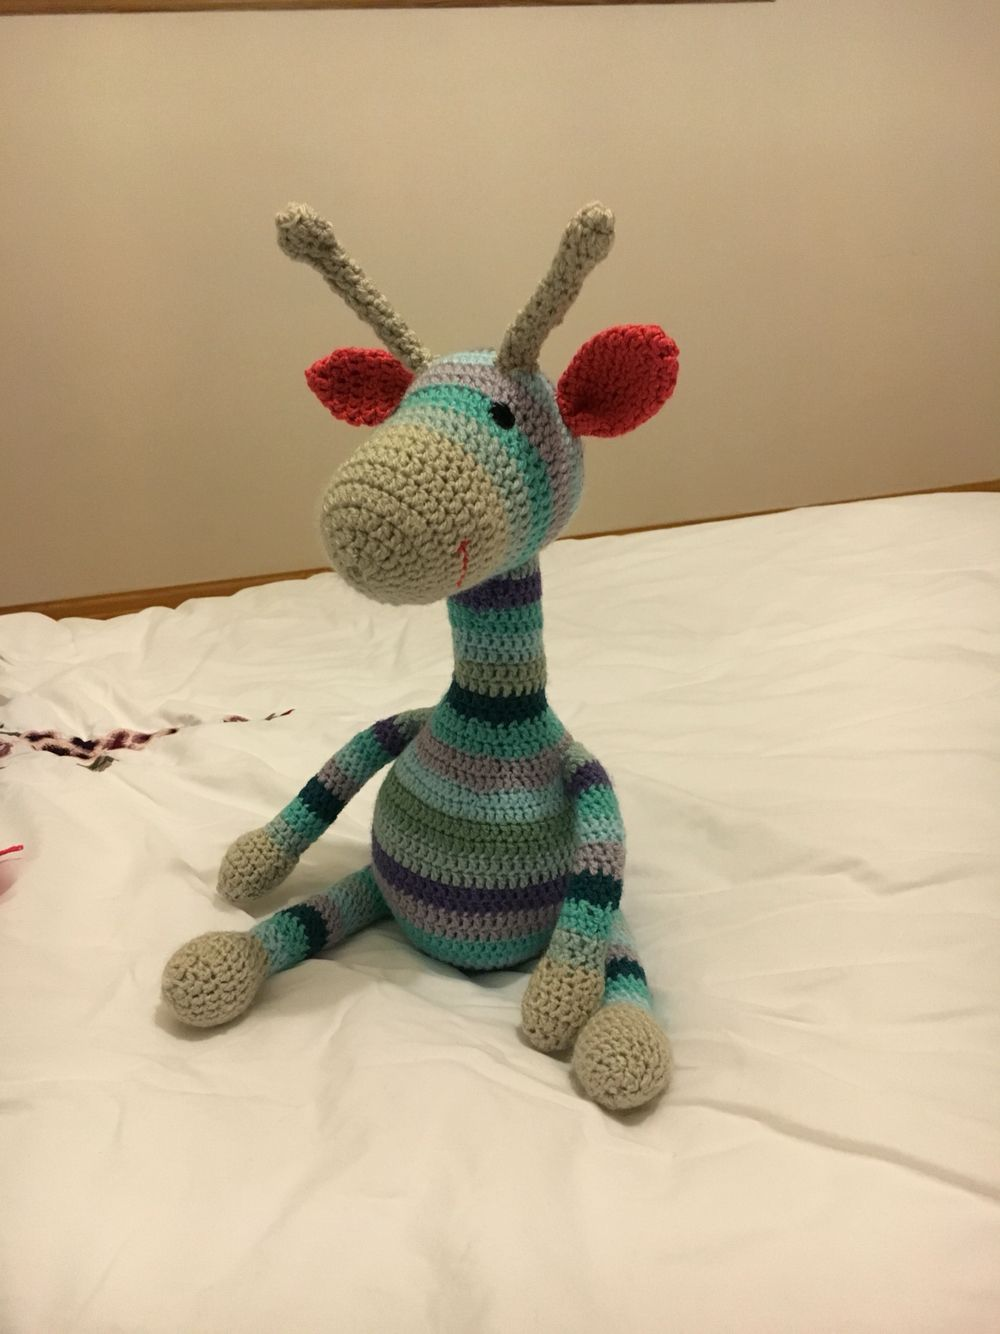 My crochet giraffe from free pattern @ http://ilovebuttonsbyemma.blogspot.co.uk/2013/01/crochet-giraffe-pattern.html?m=1